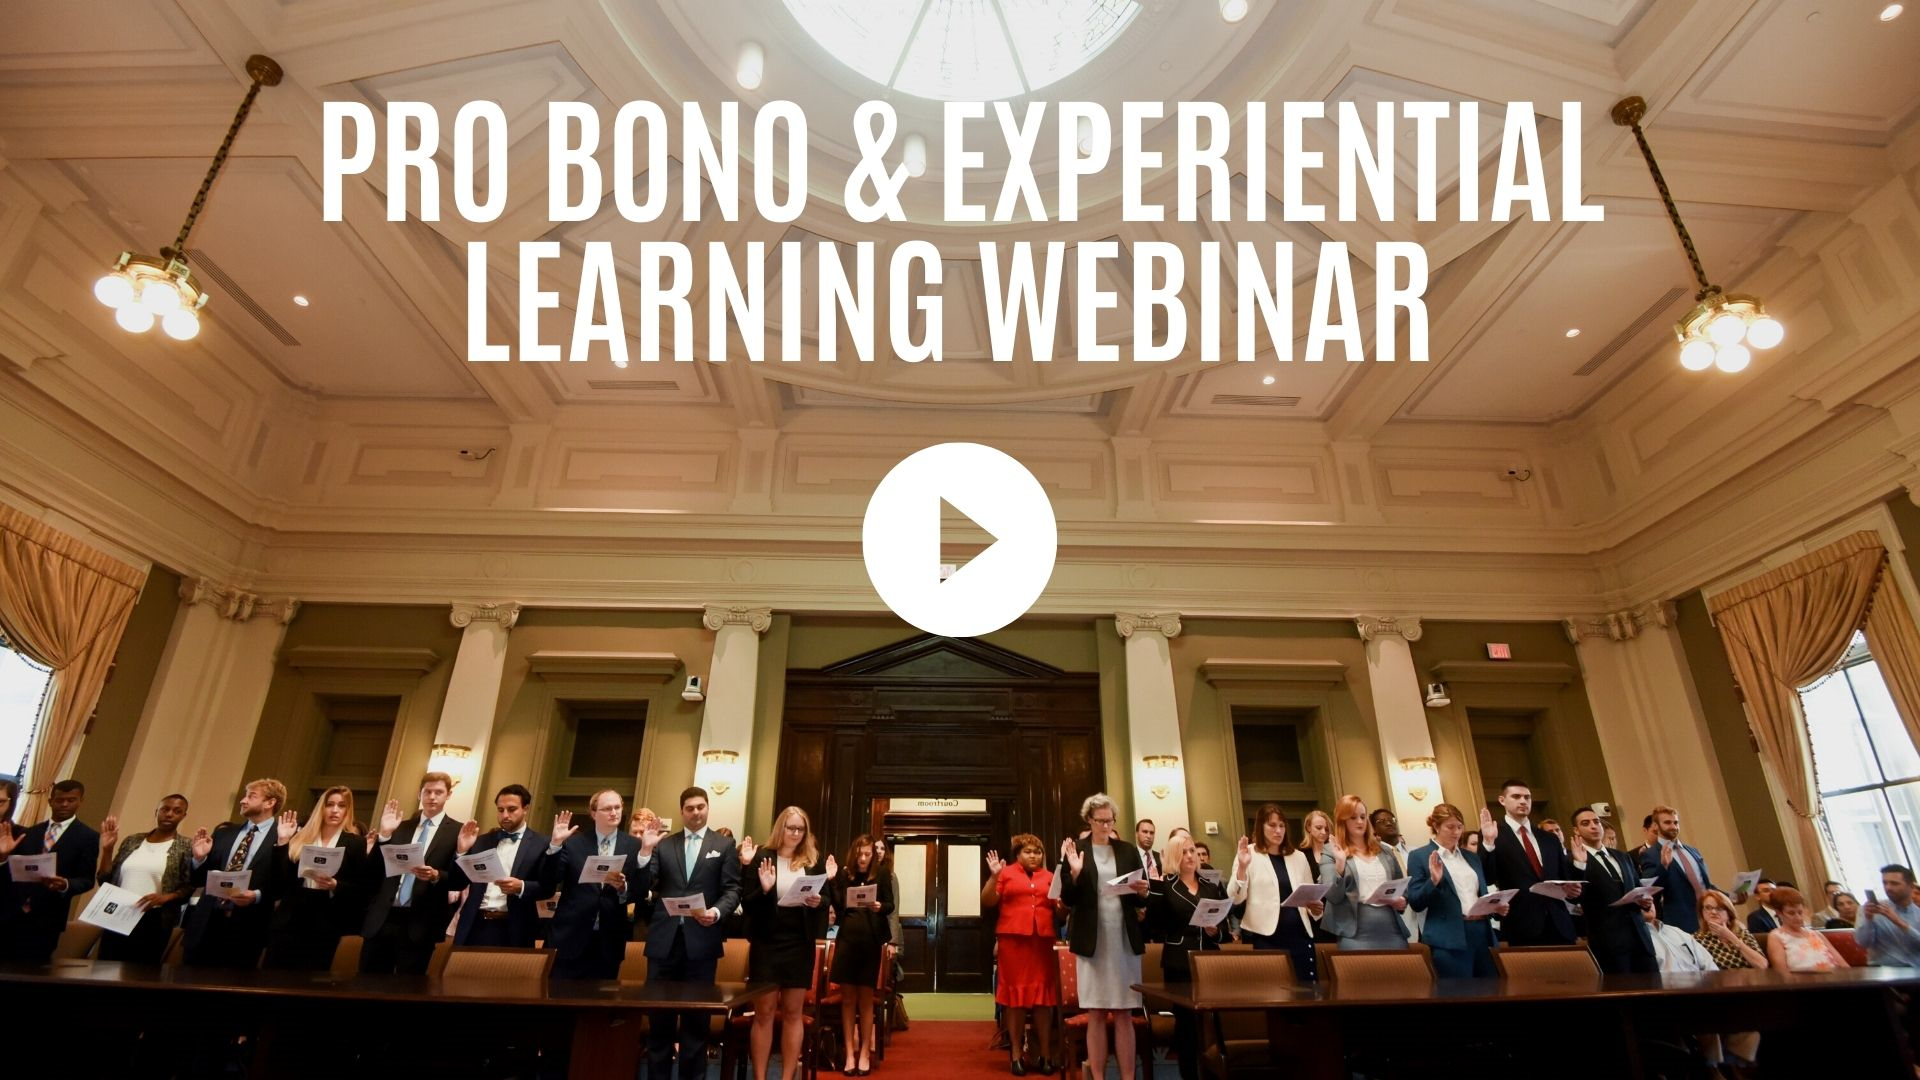 Experiential Learning Webinar